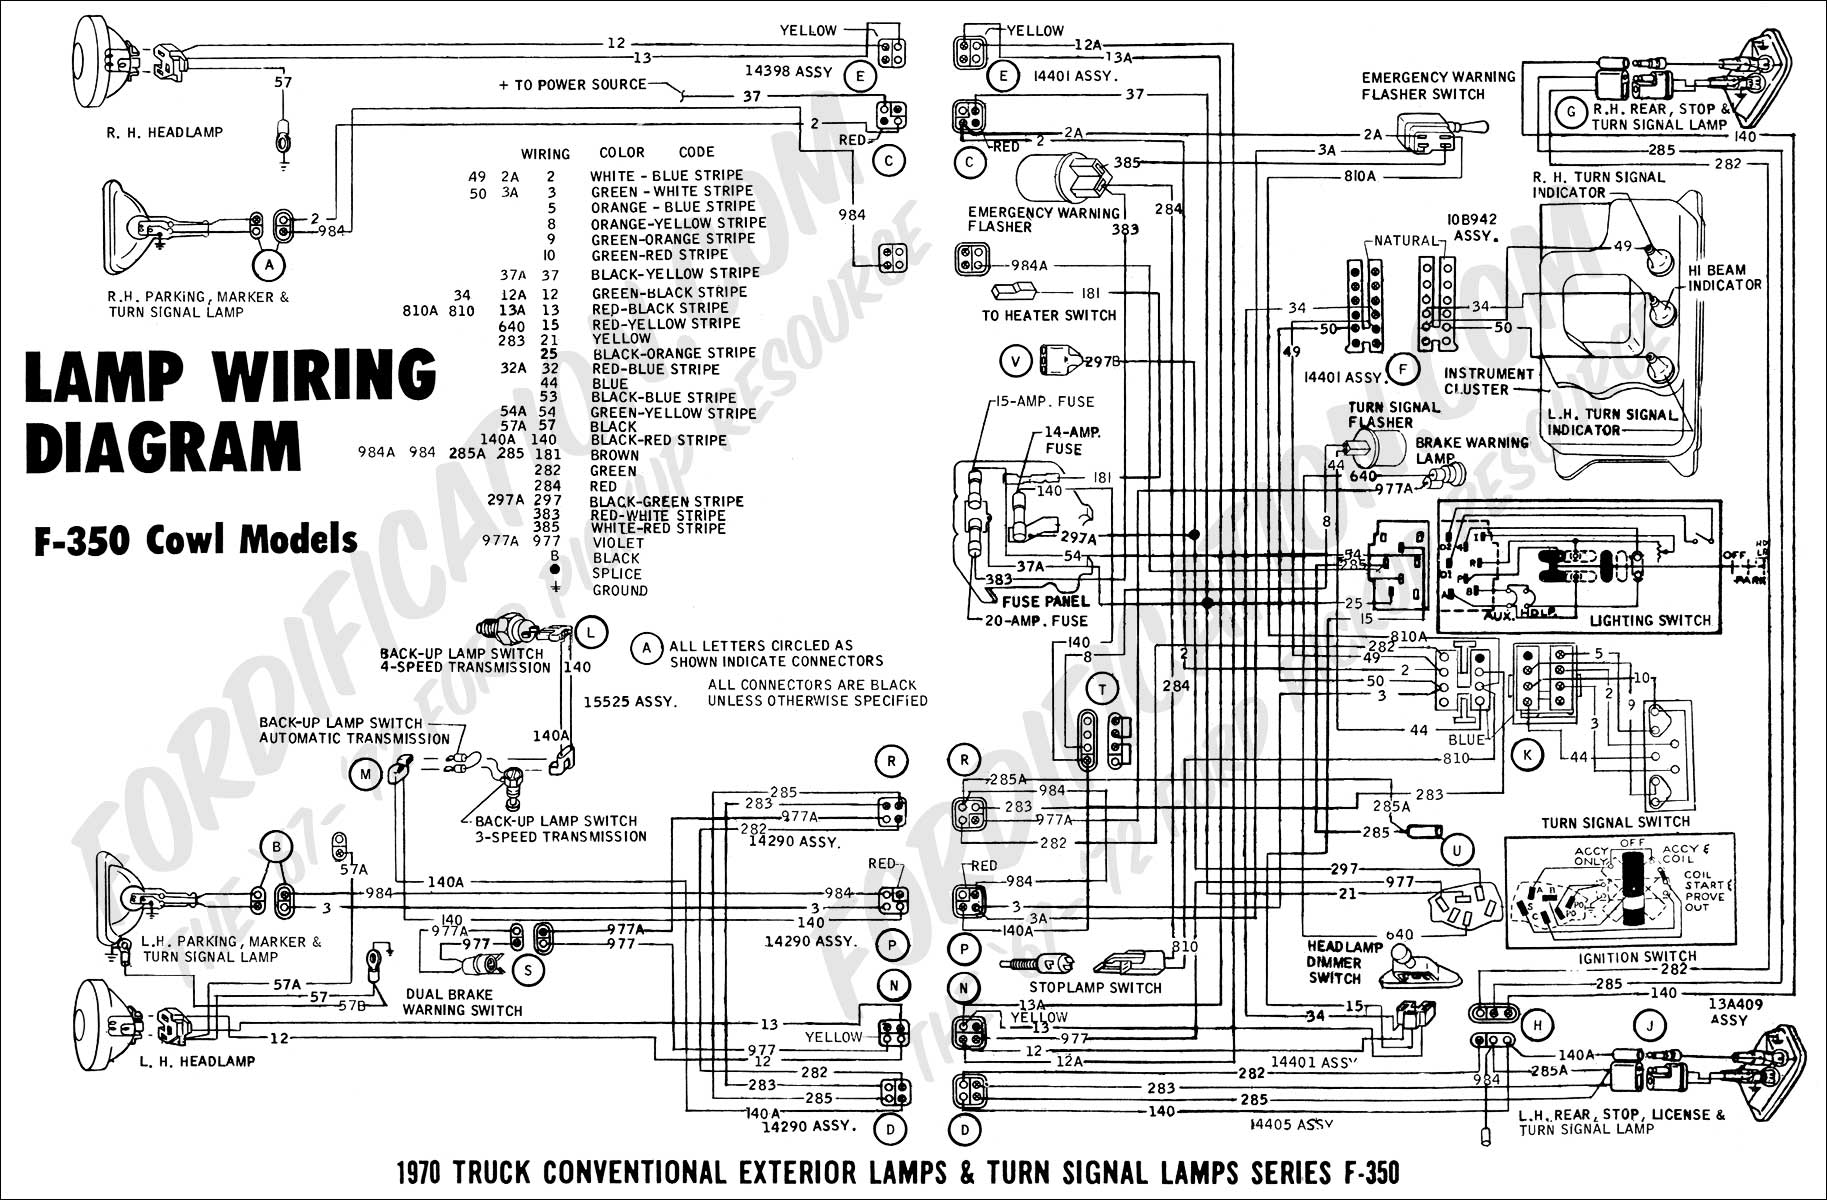 Park Lights Wire Diagram 1970 Mustang Schema Wiring Diagrams Schematic For 1981 Ford Site